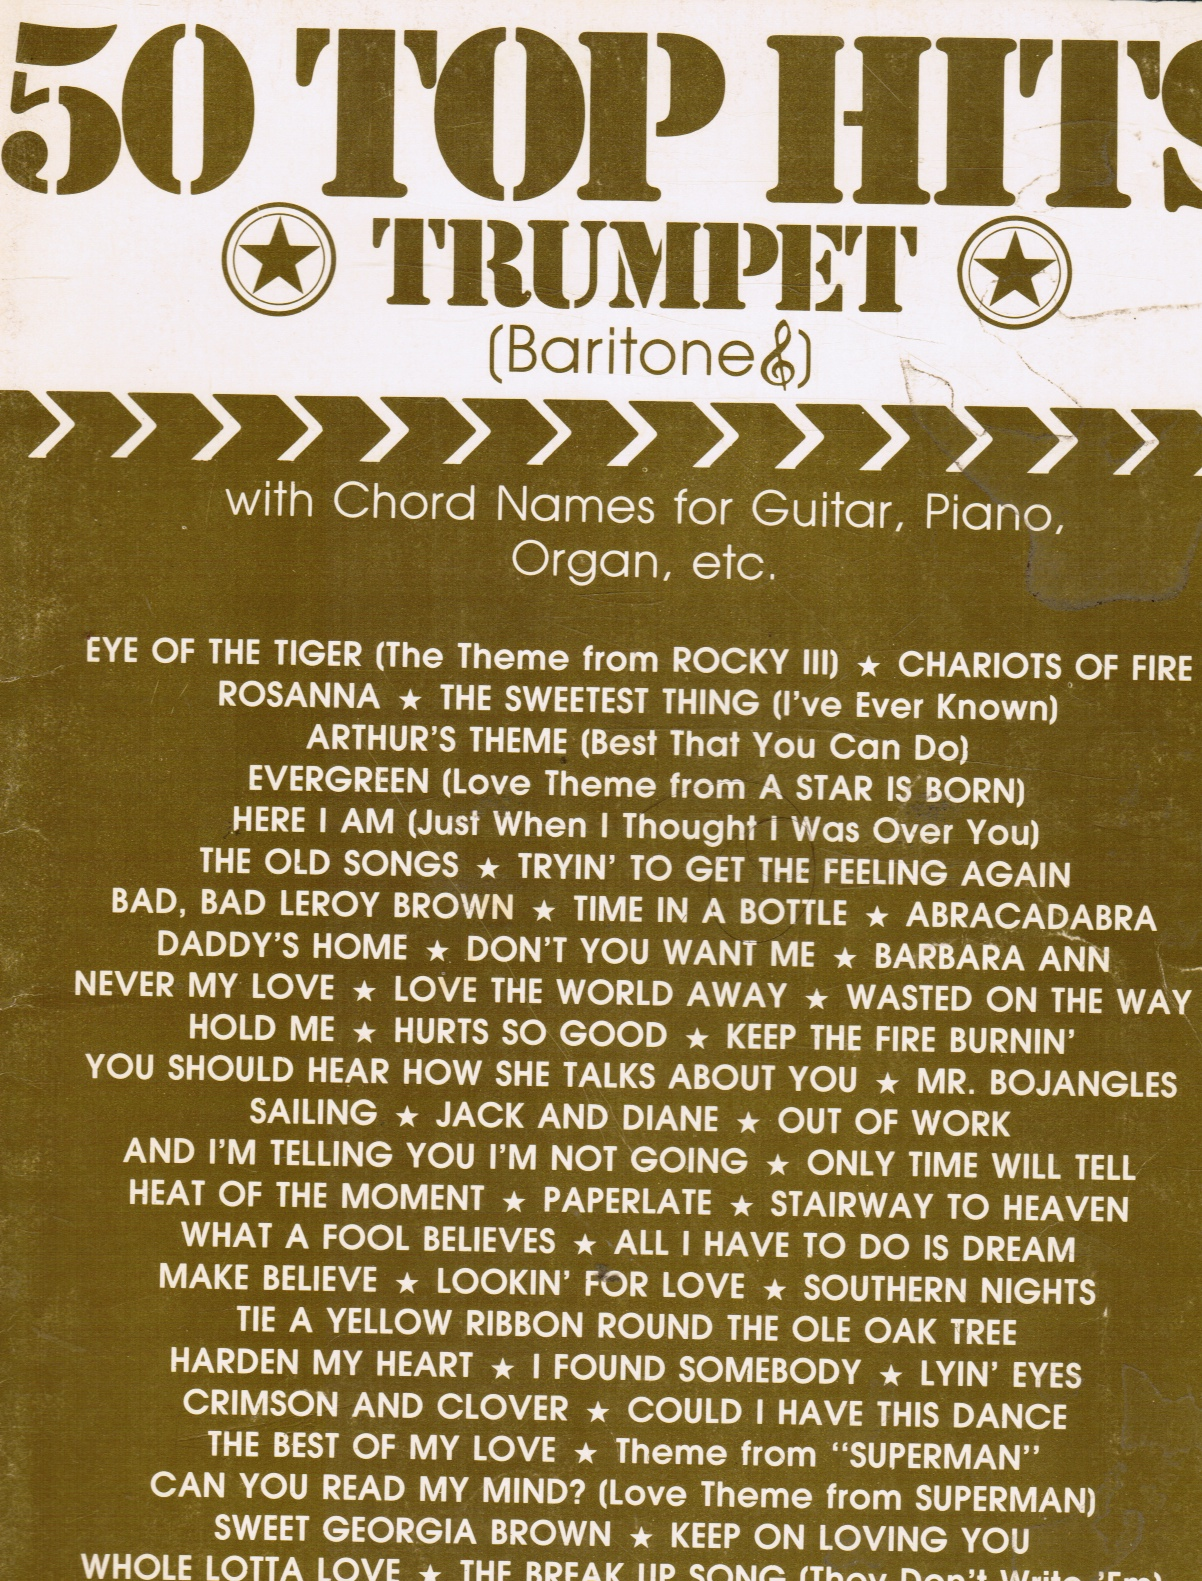 Image for 50 Top Hits Trumpet (Baritone) with Chord Names for Guitar, Piano, Organ, Etc